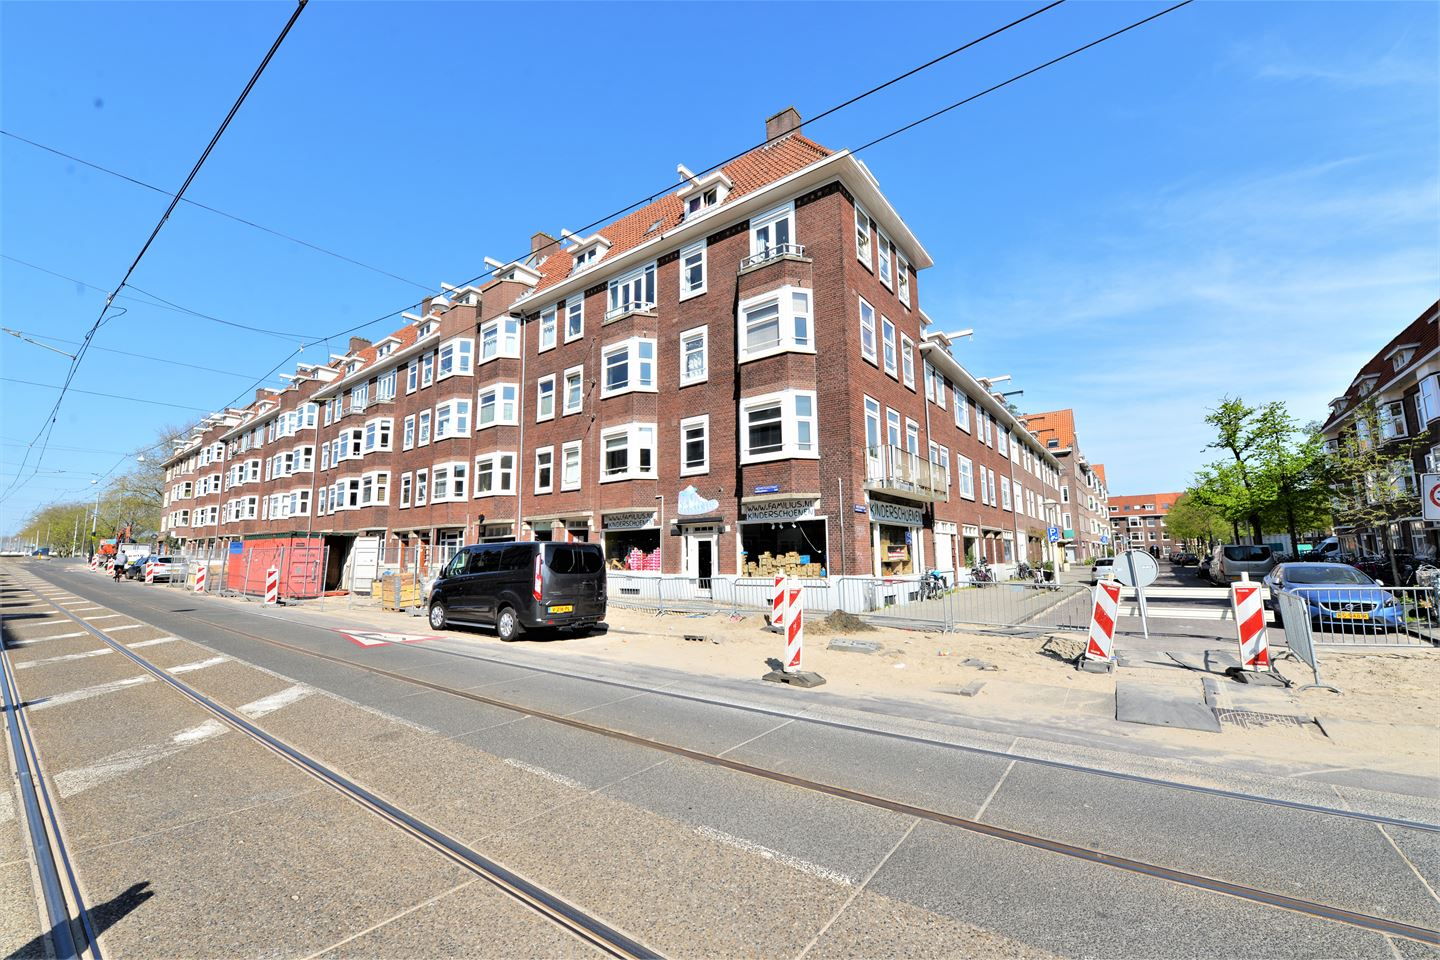 View photo 1 of Heemstedestraat 44 1